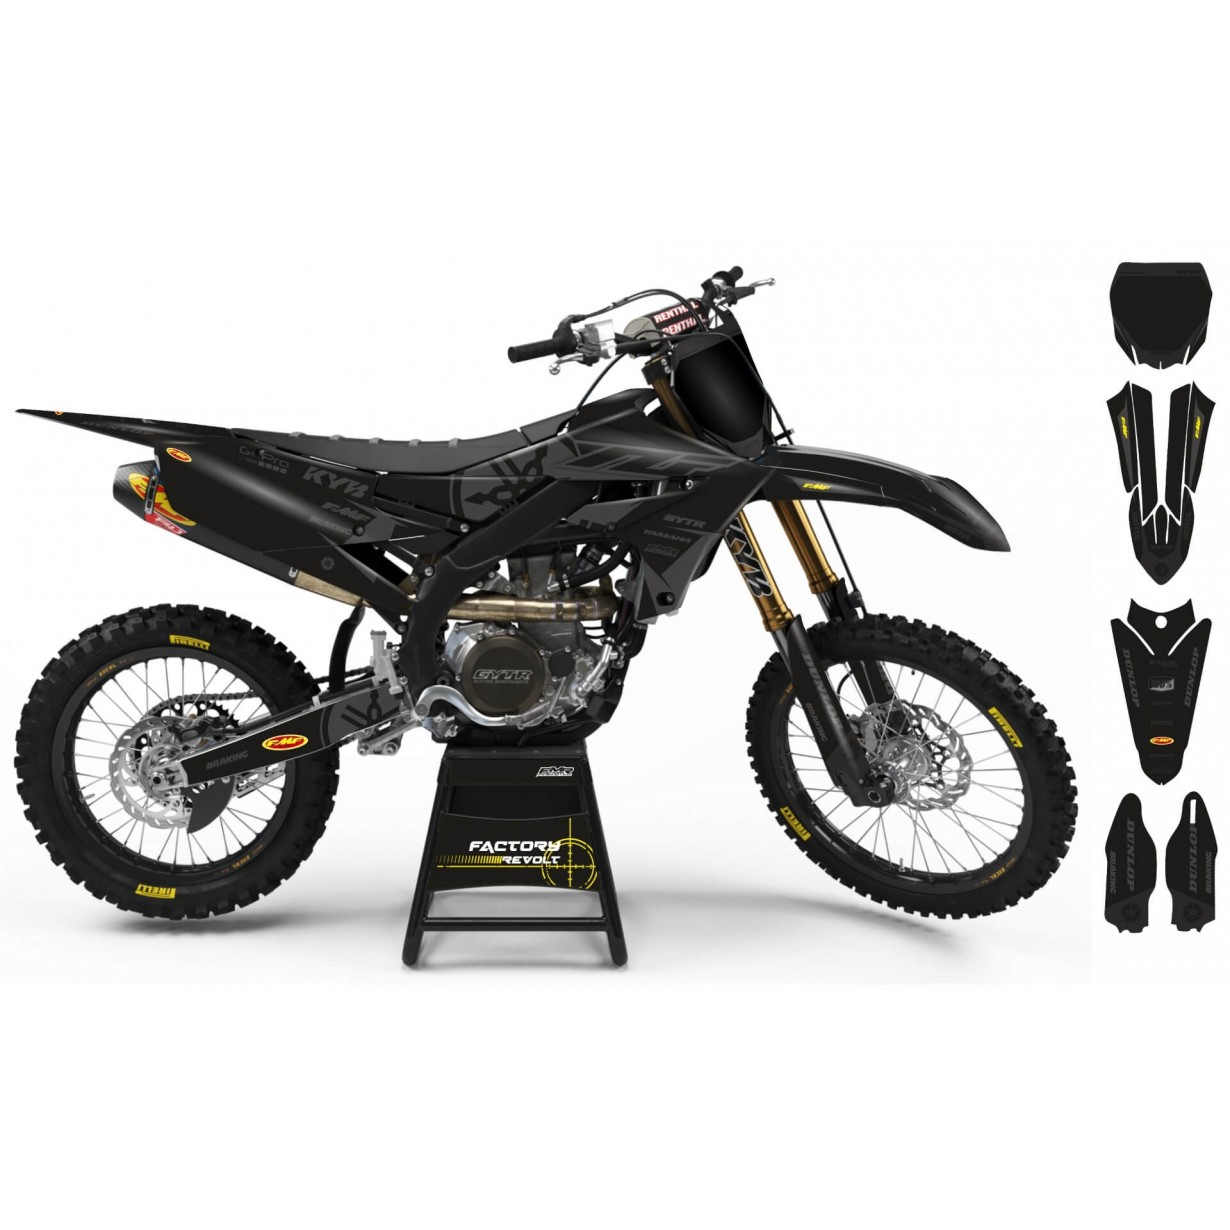 Kit déco Perso YAMAHA Factory Revolt A26E8 black/grey